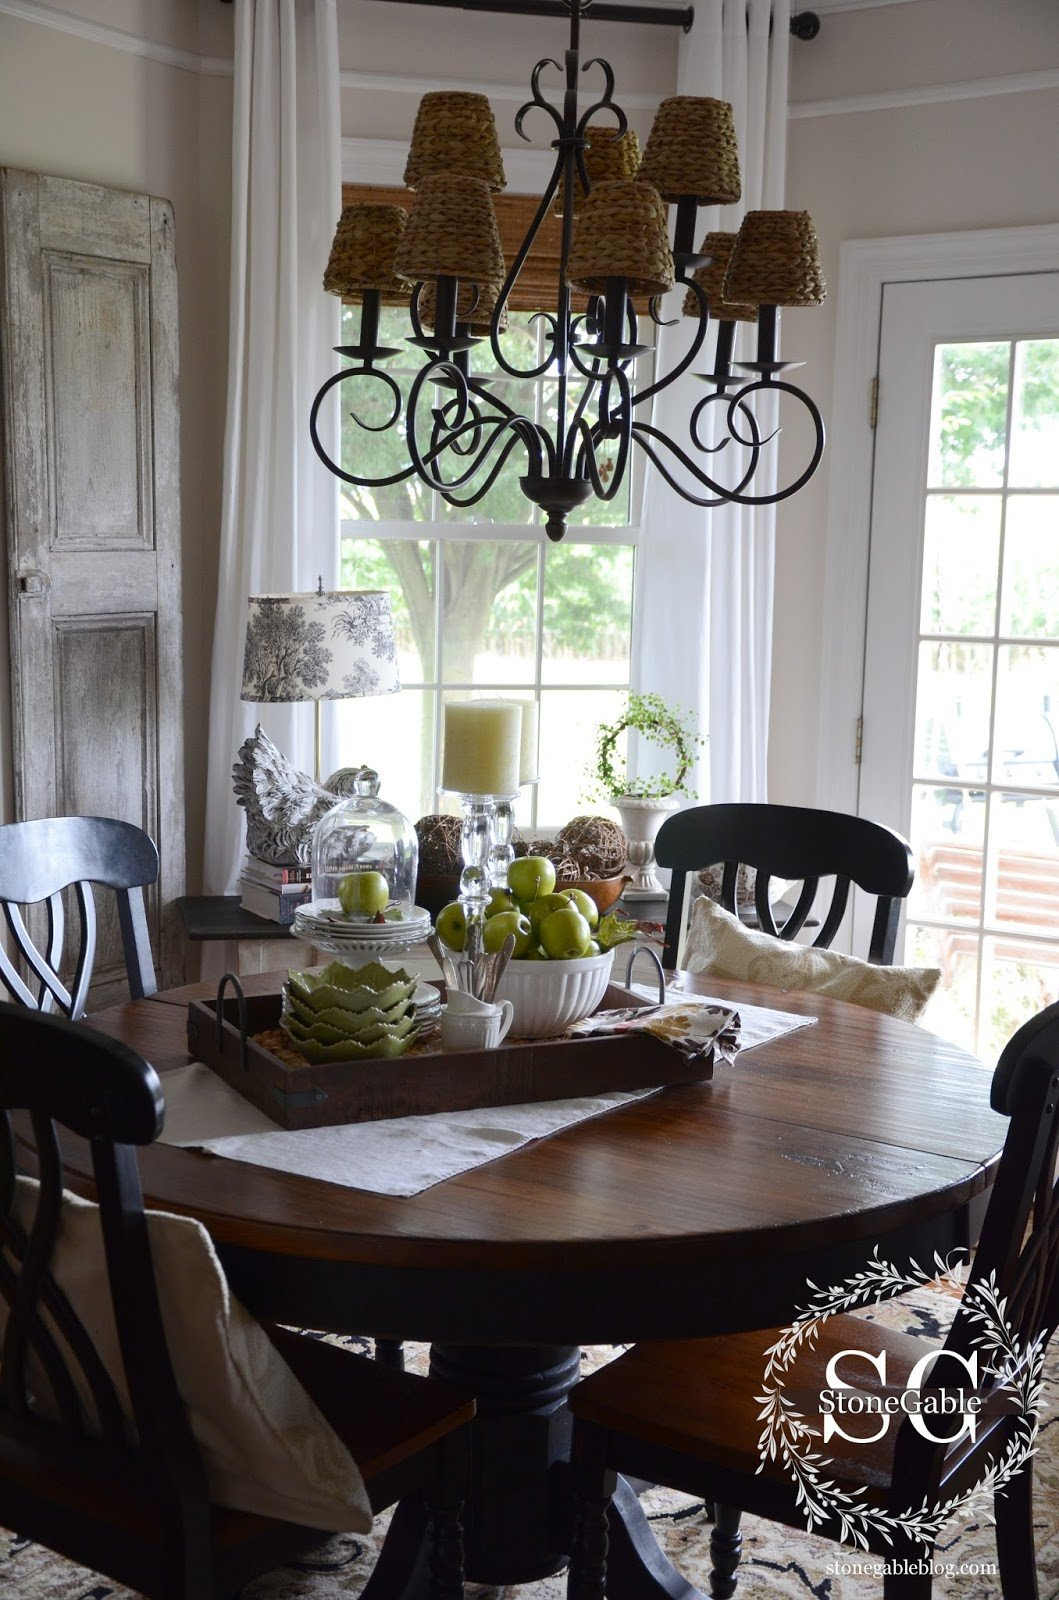 Decor for Dining Room Table Beautiful Dining Table Decor for An Everyday Look Tidbits&twine